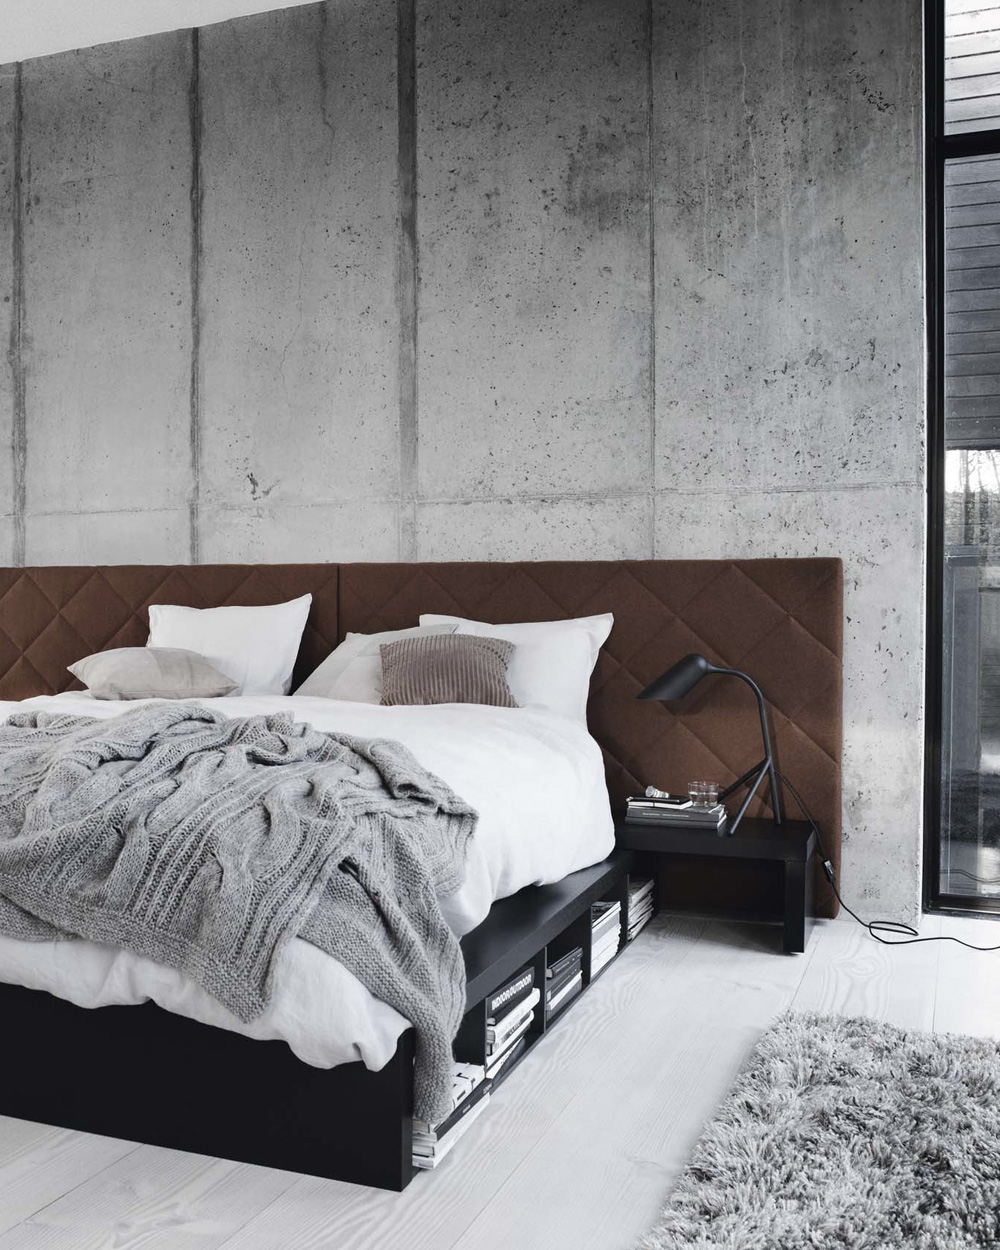 comment utiliser le b ton dans sa d co shake my blog. Black Bedroom Furniture Sets. Home Design Ideas